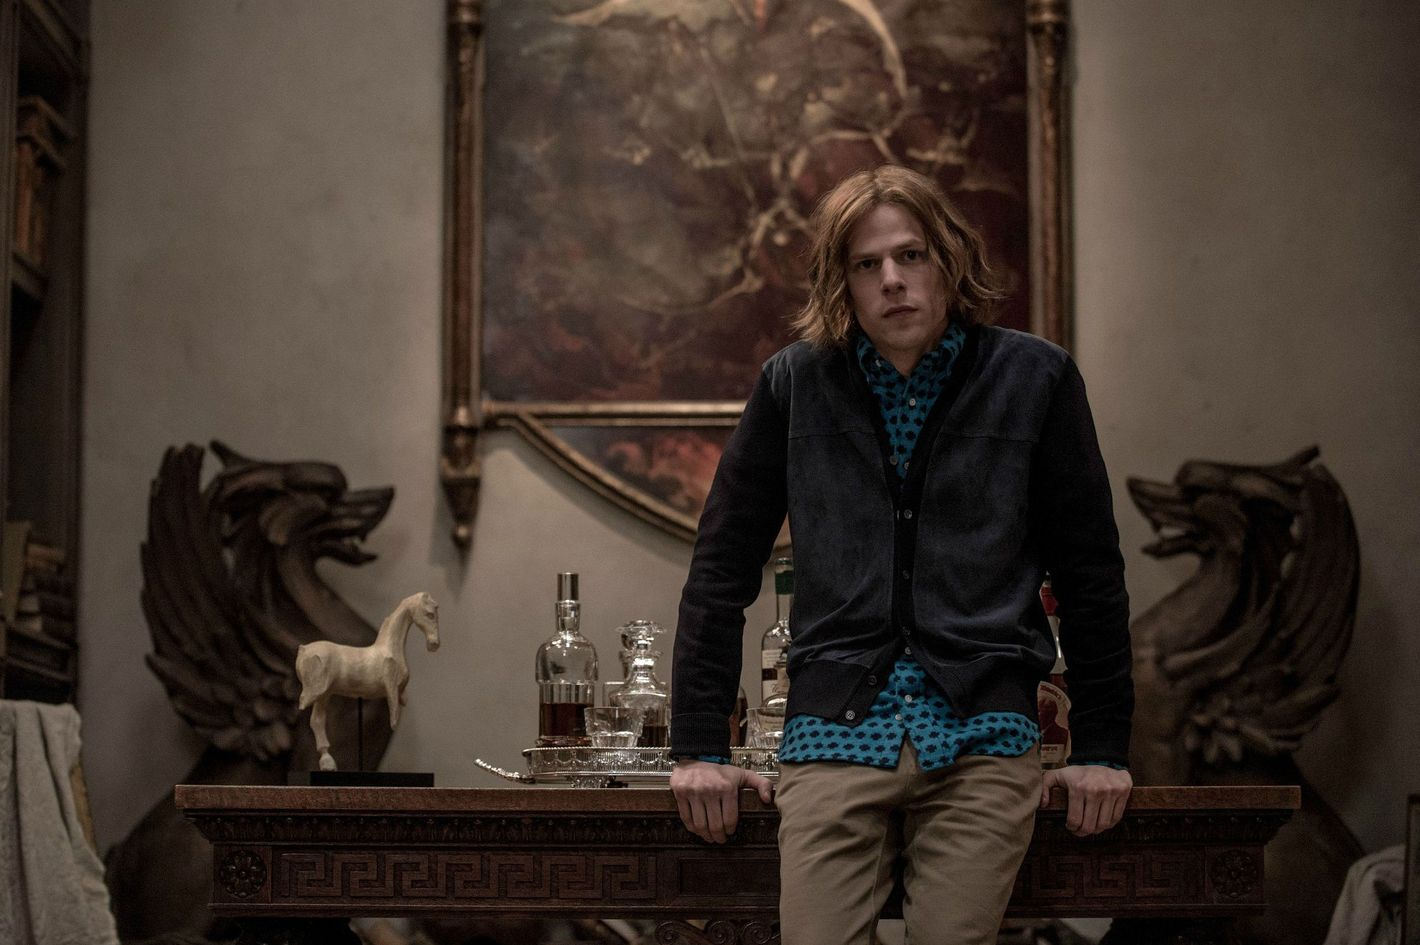 A still of Lex Luthor from the movie